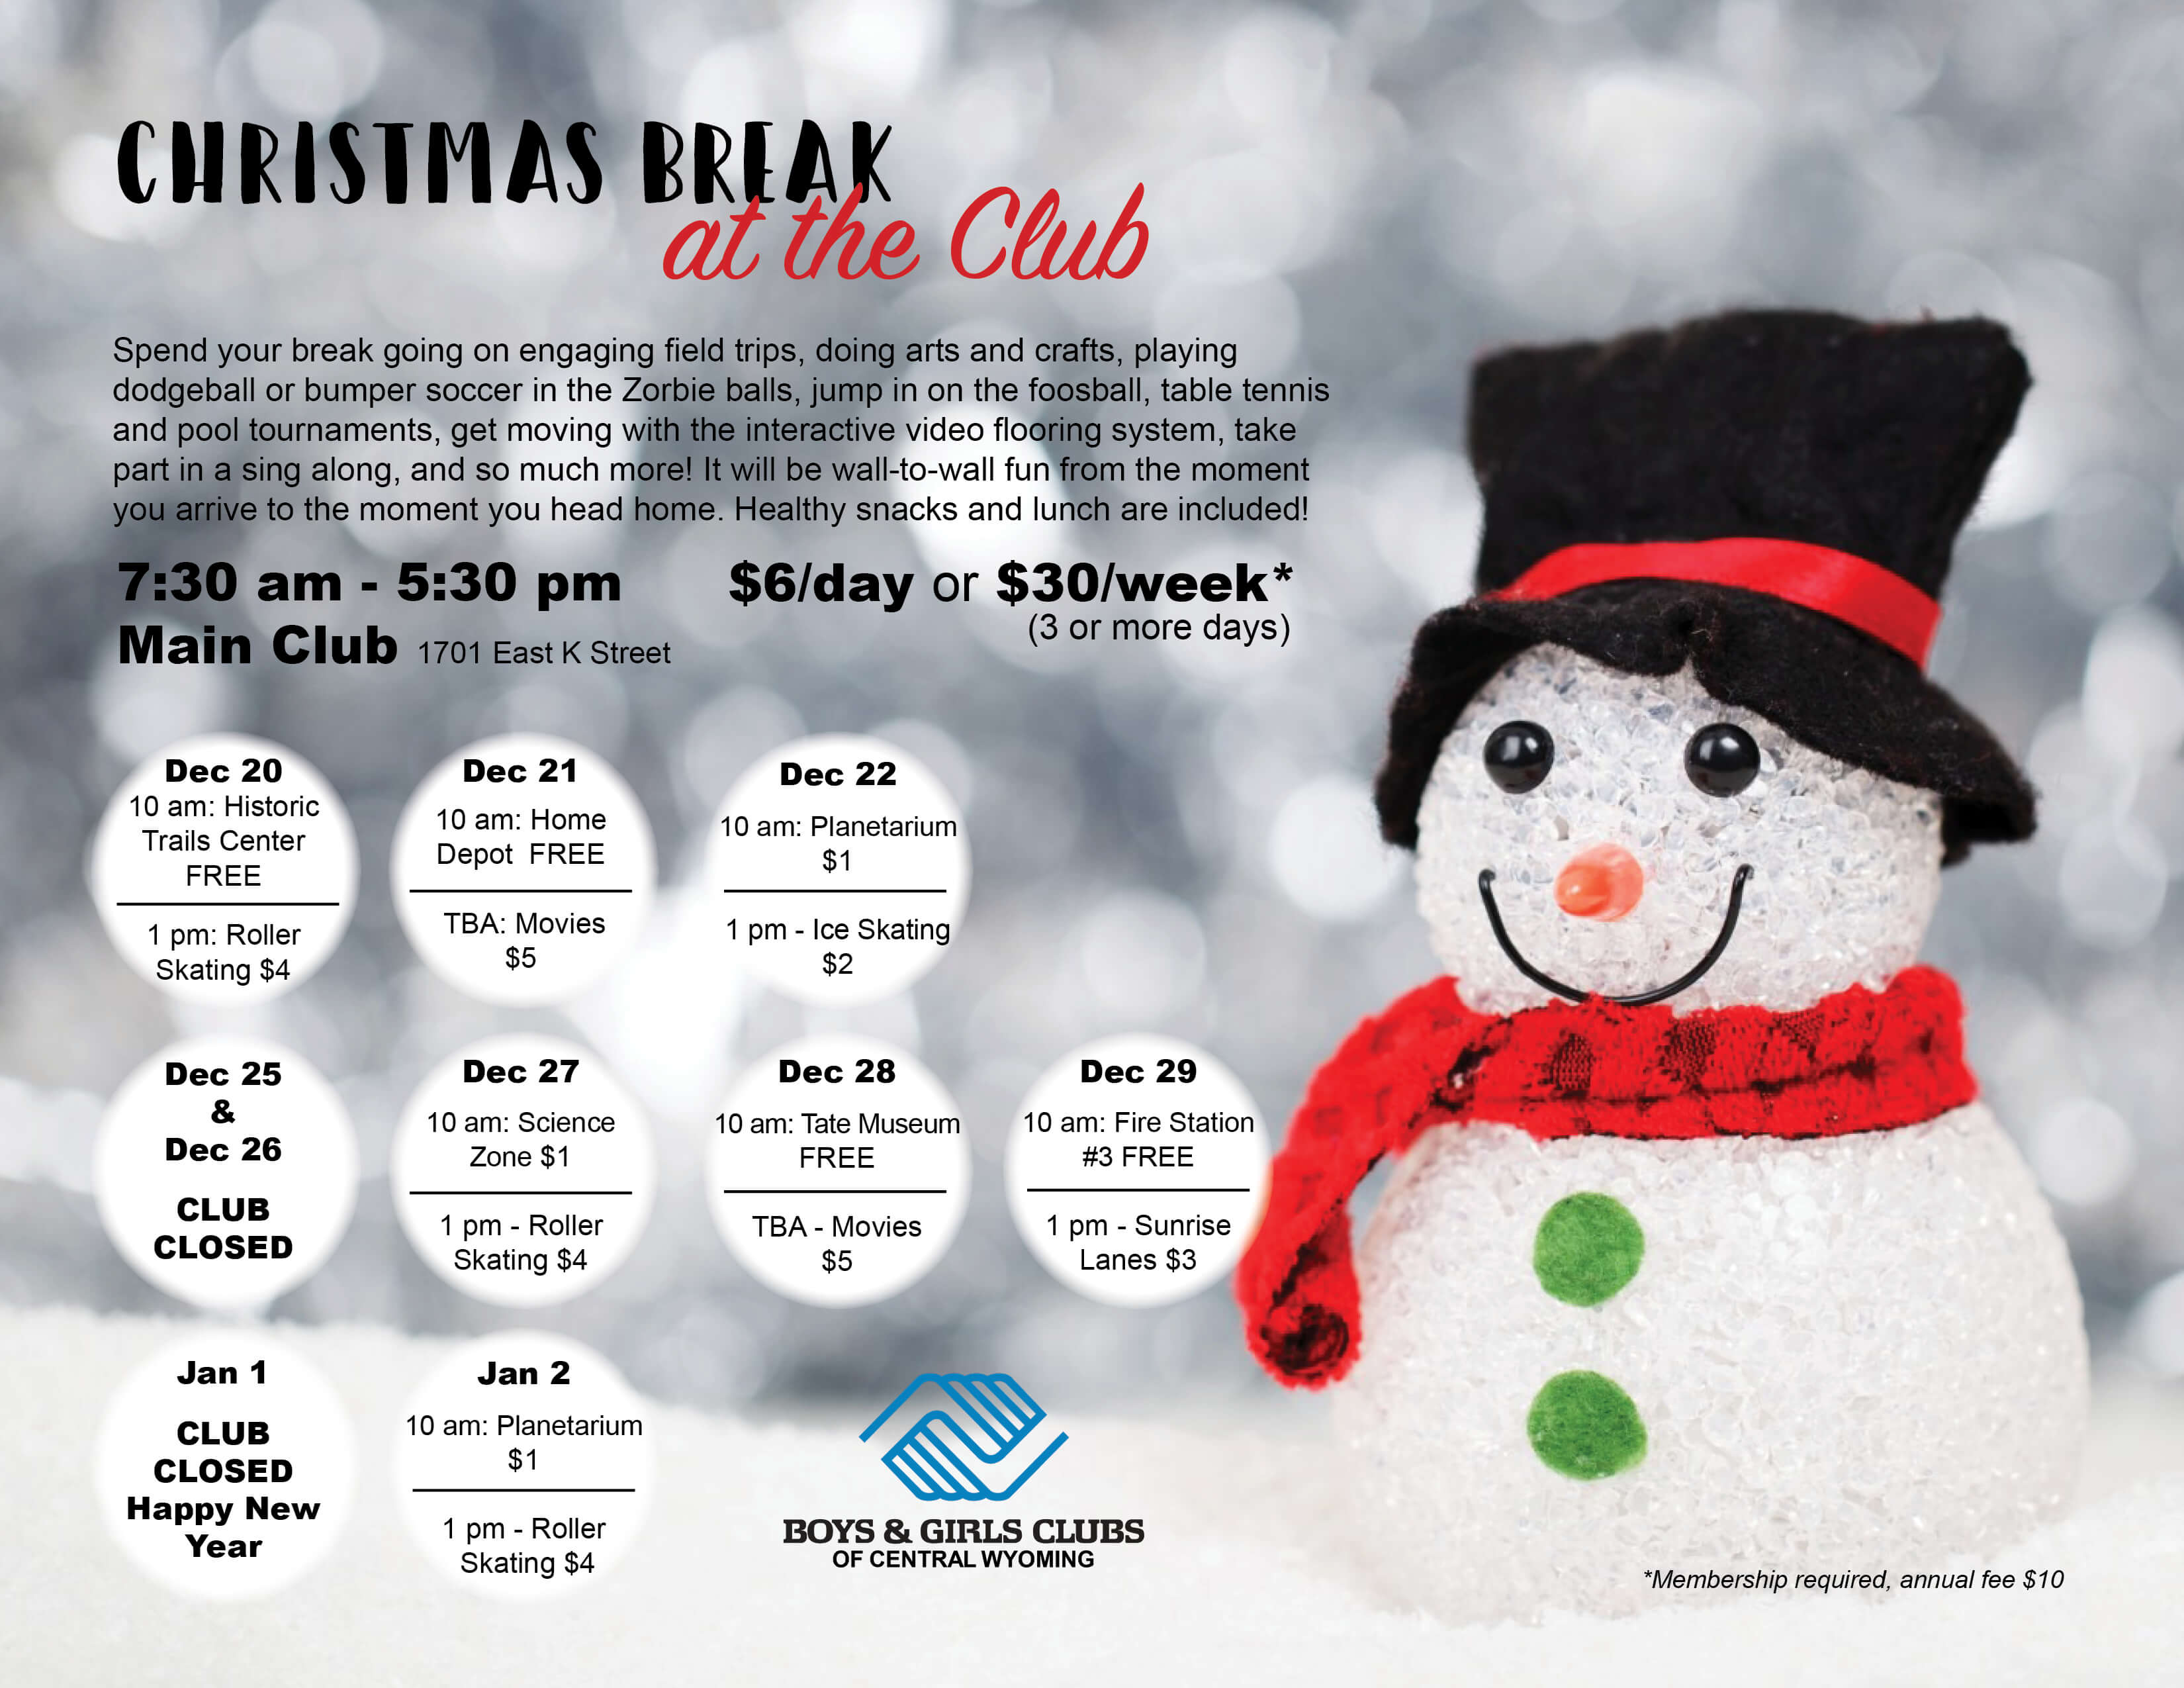 Christmas Break at the Club - Boys & Girls Clubs of Central Wyoming